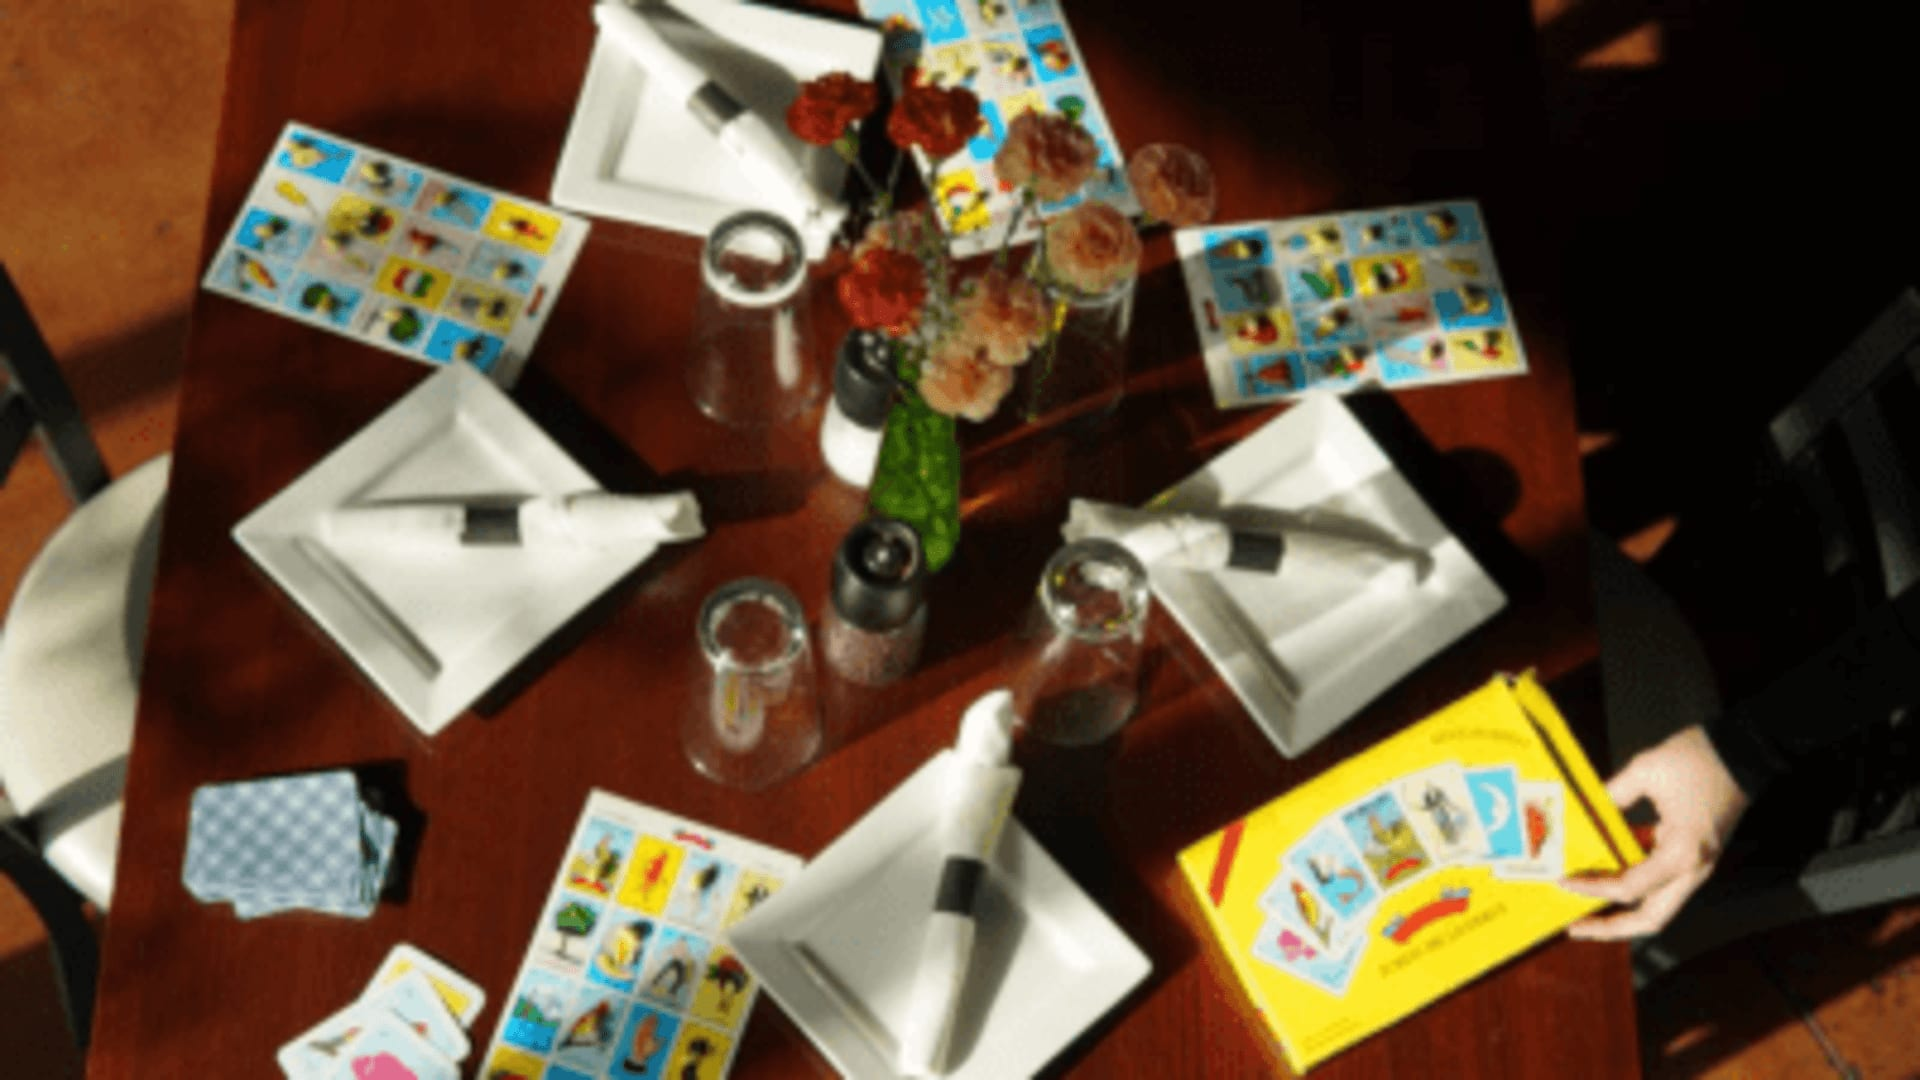 mexican grill table footage with plates and mexican games for exhibition